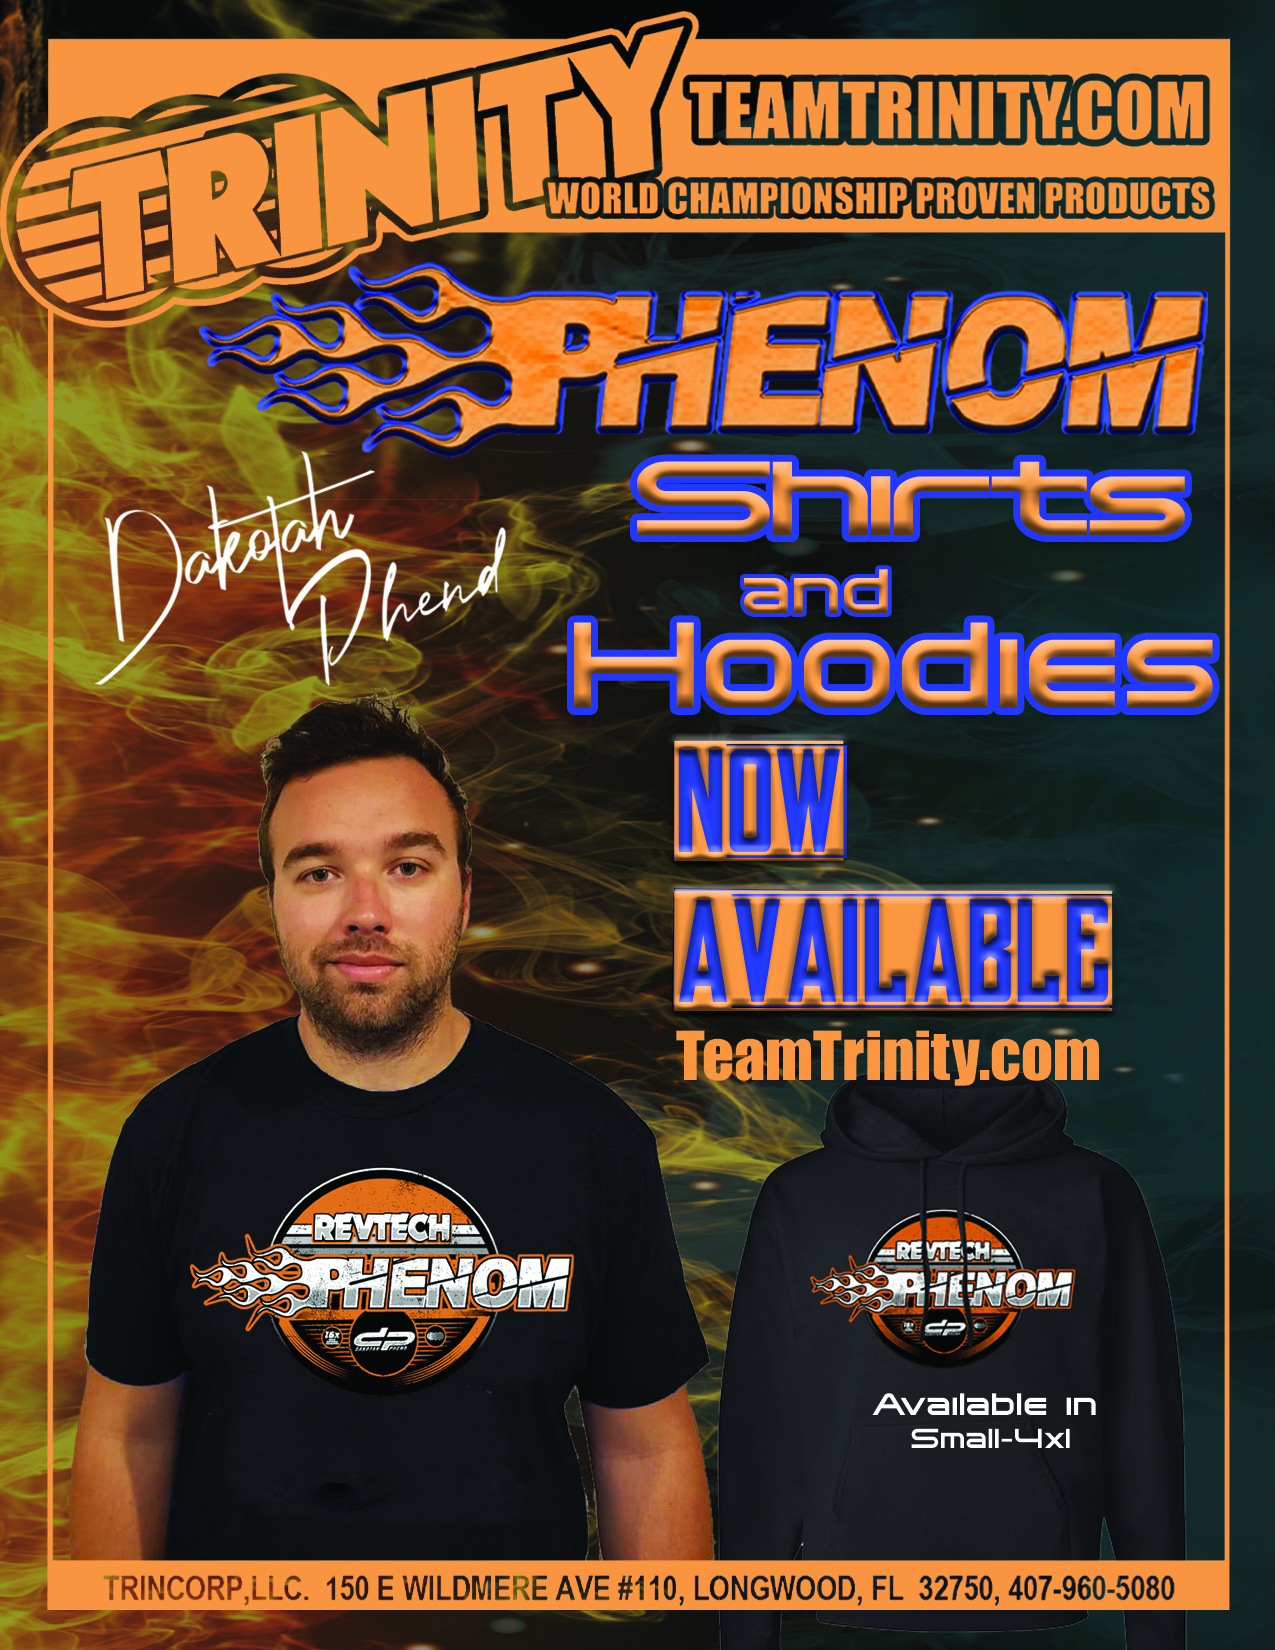 Phenom Shirts and Hoodies NOW AVAILABLE!!!